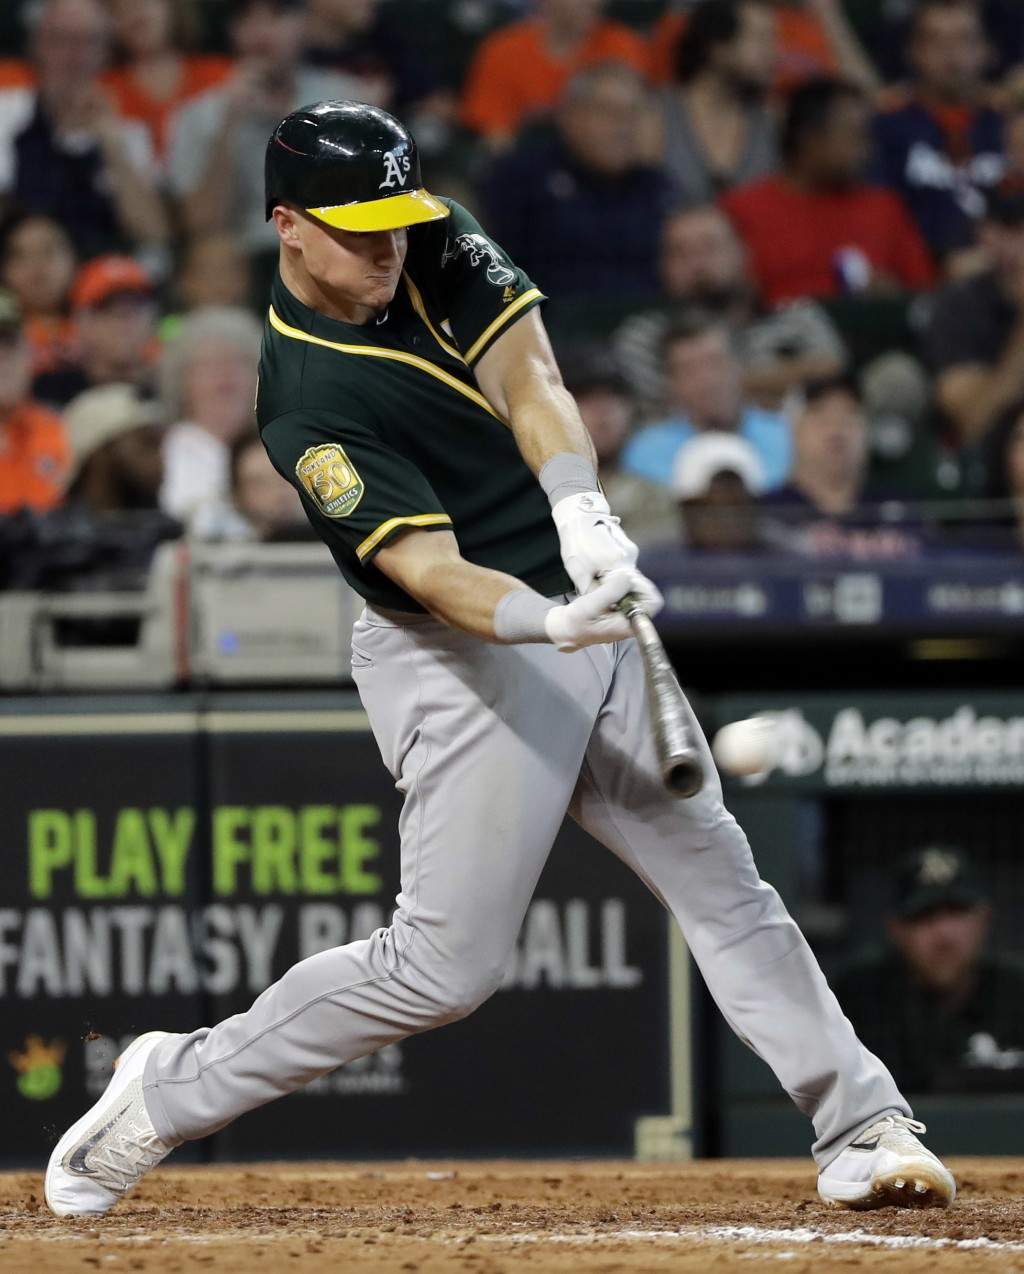 Oakland Athletics' Matt Chapman hits a RBI double during the eighth inning of a baseball game against the Houston Astros Thursday, July 12, 2018, in H